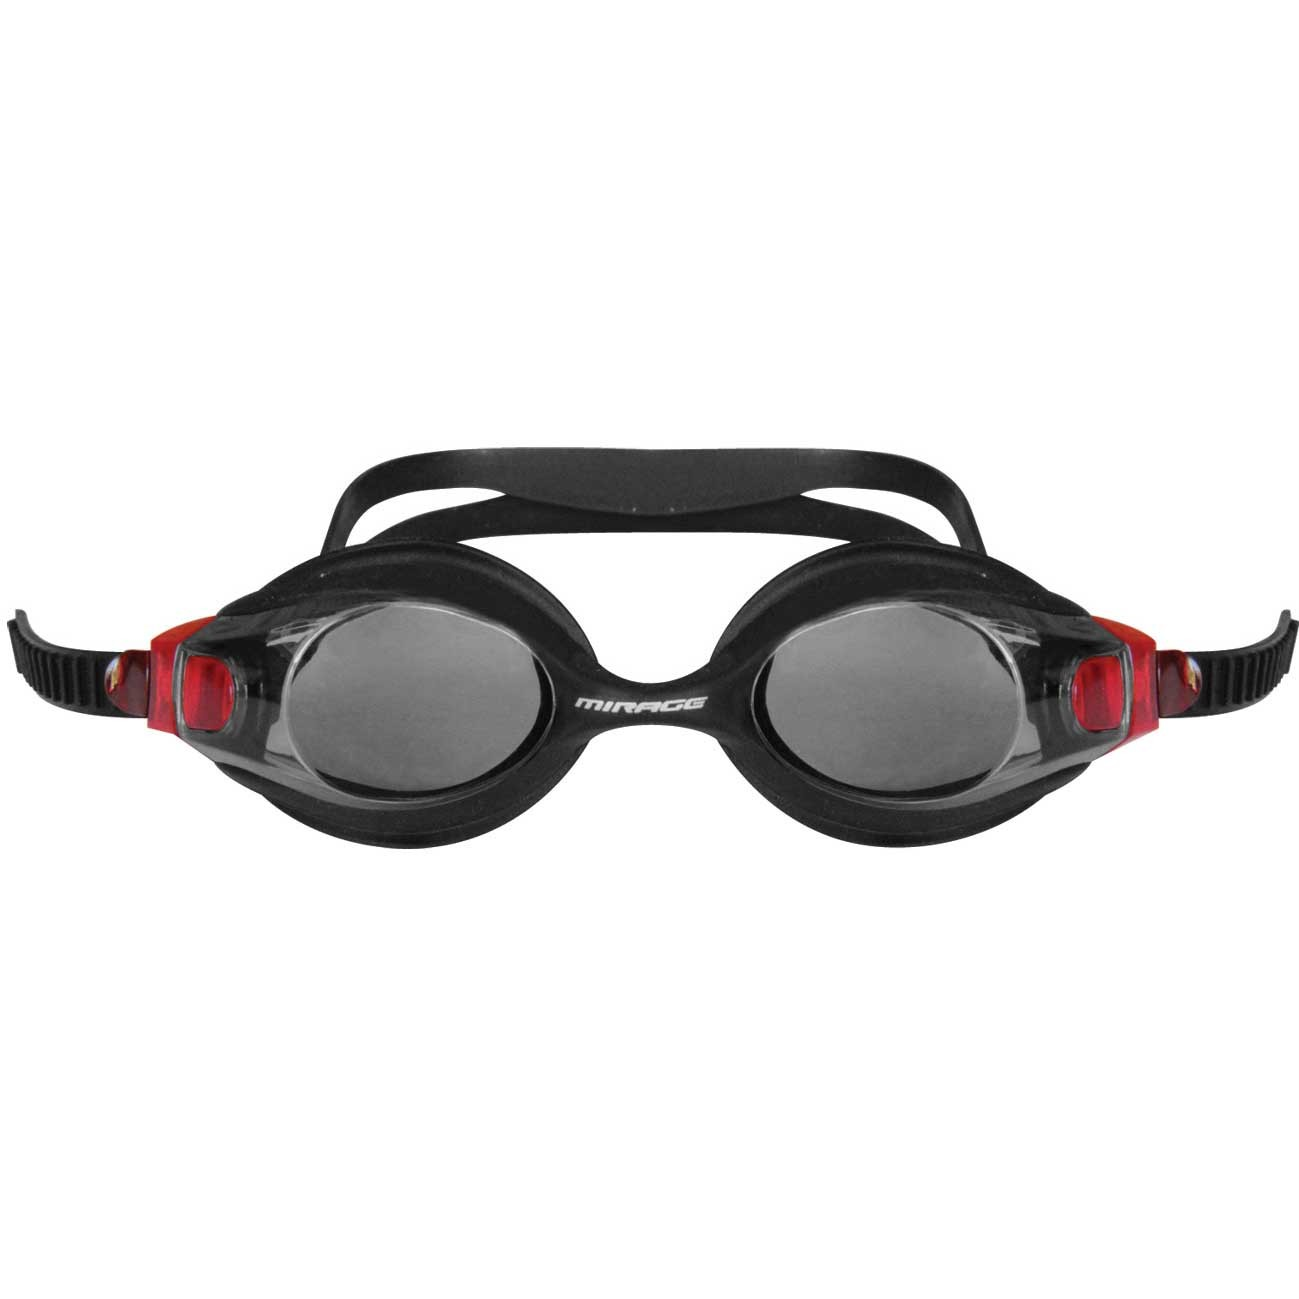 Mirage-Flow-Swimming-Goggles-with-Free-Silicone-Ear-Plugs